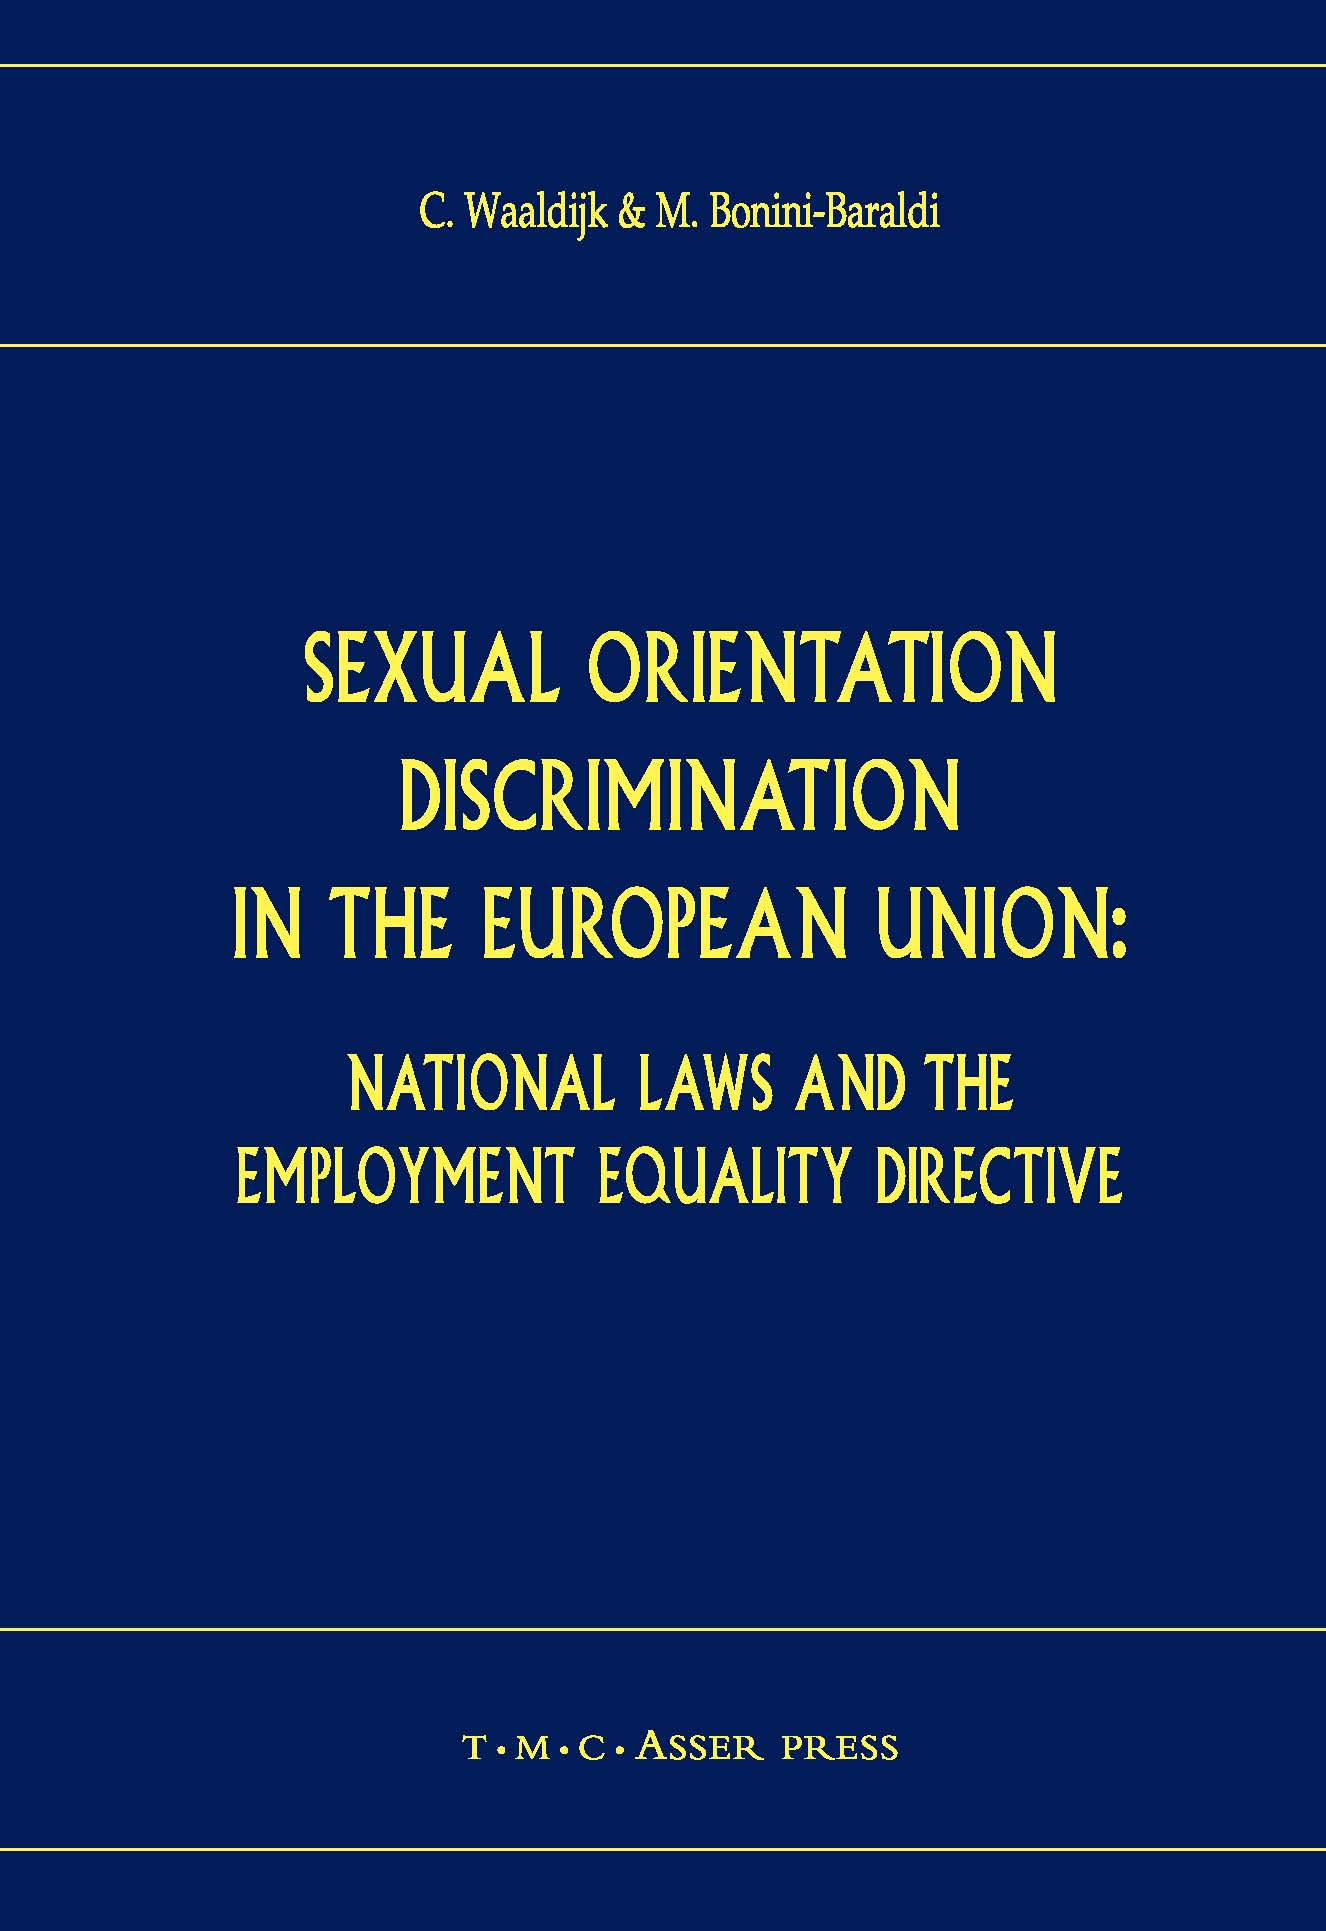 Sexual Orientation Discrimination in the European Union - National Laws and the Employment Equality Directive